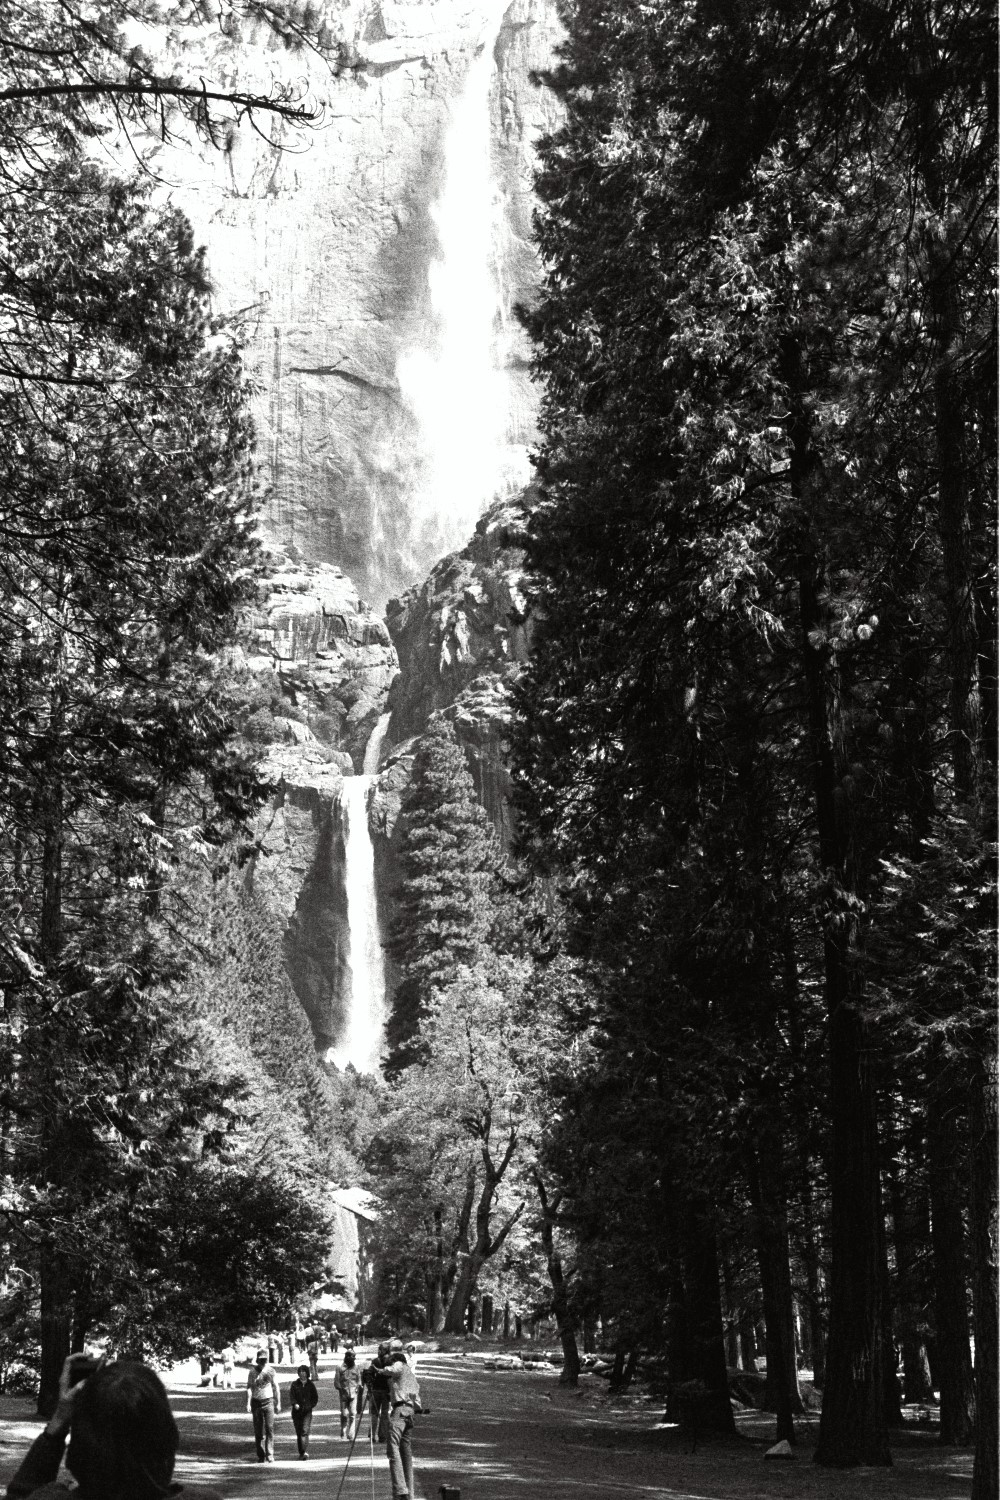 Yosemite, in the late 1970s. California USA